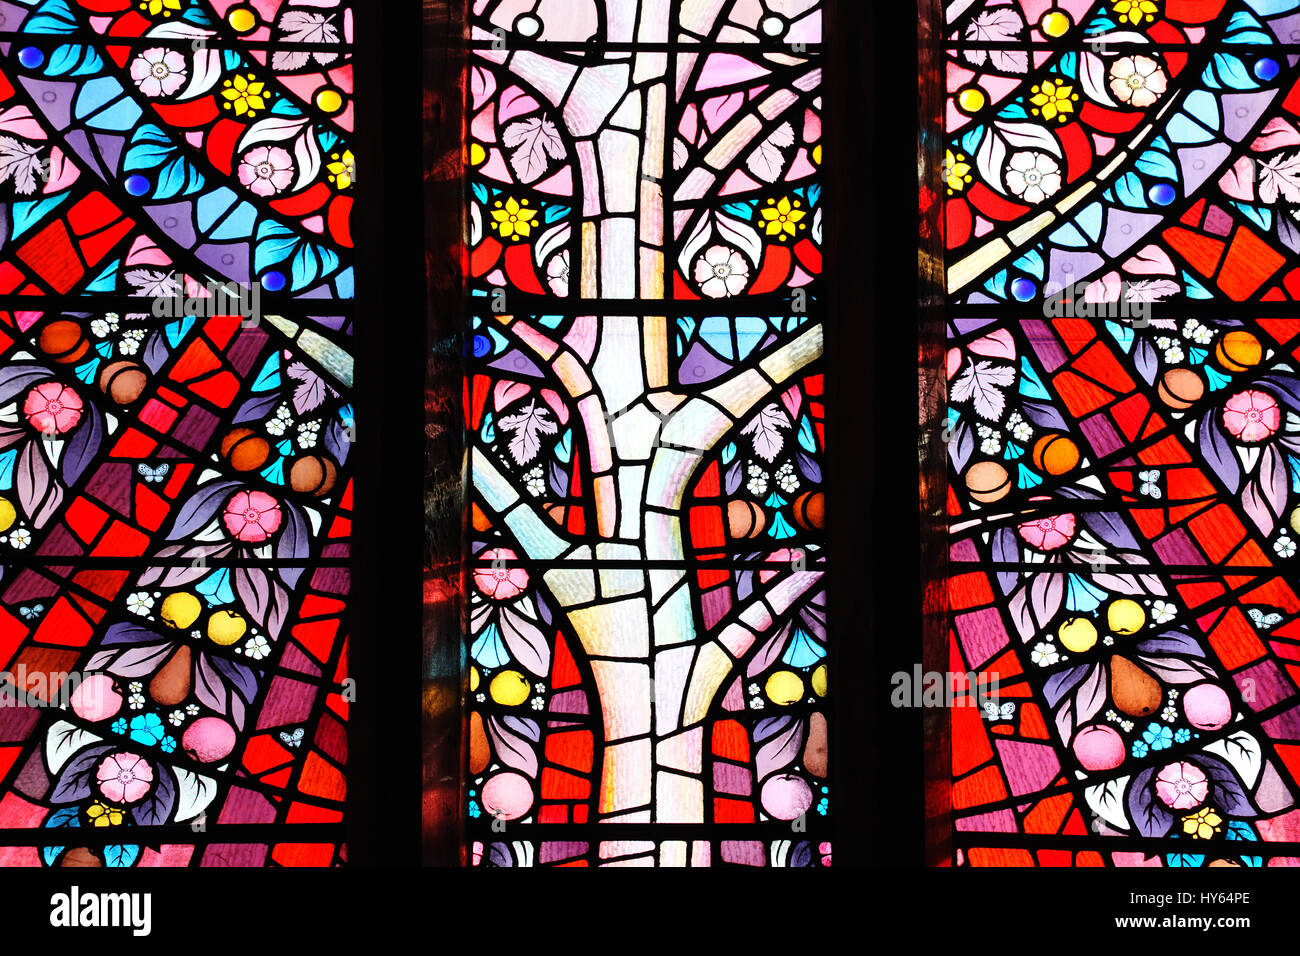 Carmarthen, Wales, UK, October 22, 2016 :  Stained glass window of St Peter's Church which shows the fruit of - Stock Image